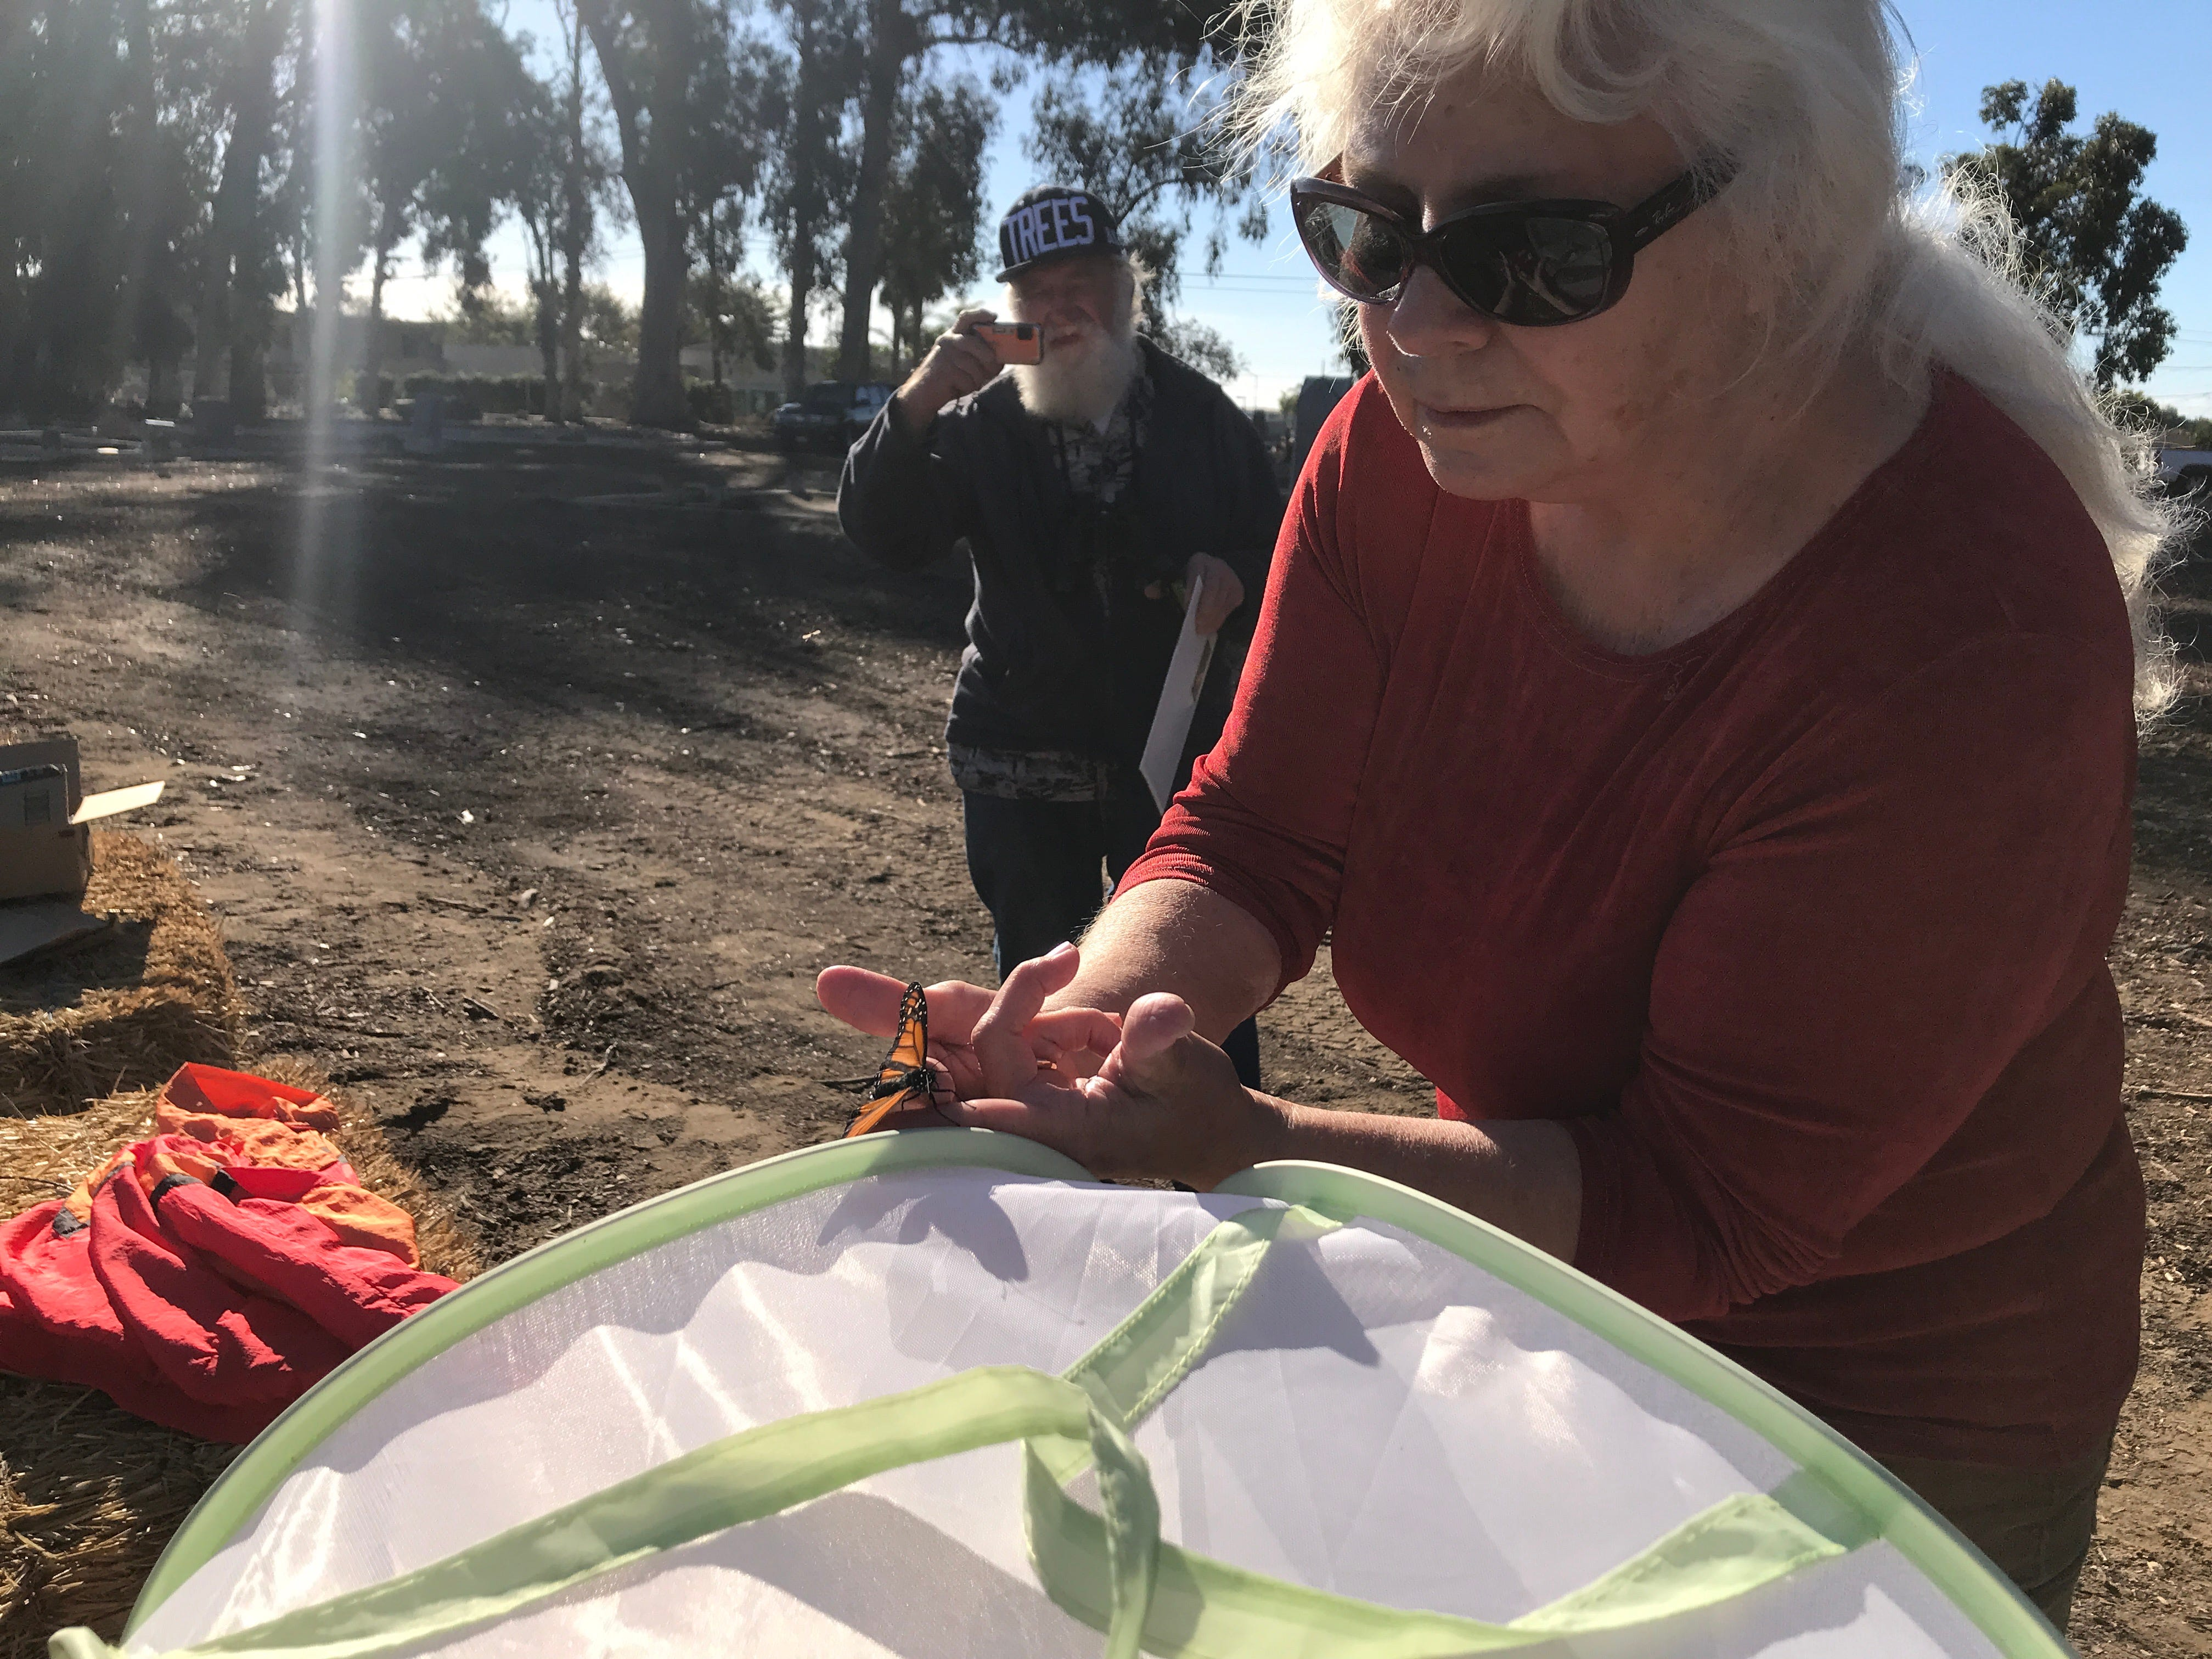 Nancy Cozza, president of the Huenemean Bohemian Artist Melting Pot Ministry, gets ready to release a monarch butterfly at the historic cemetery in Oxnard.